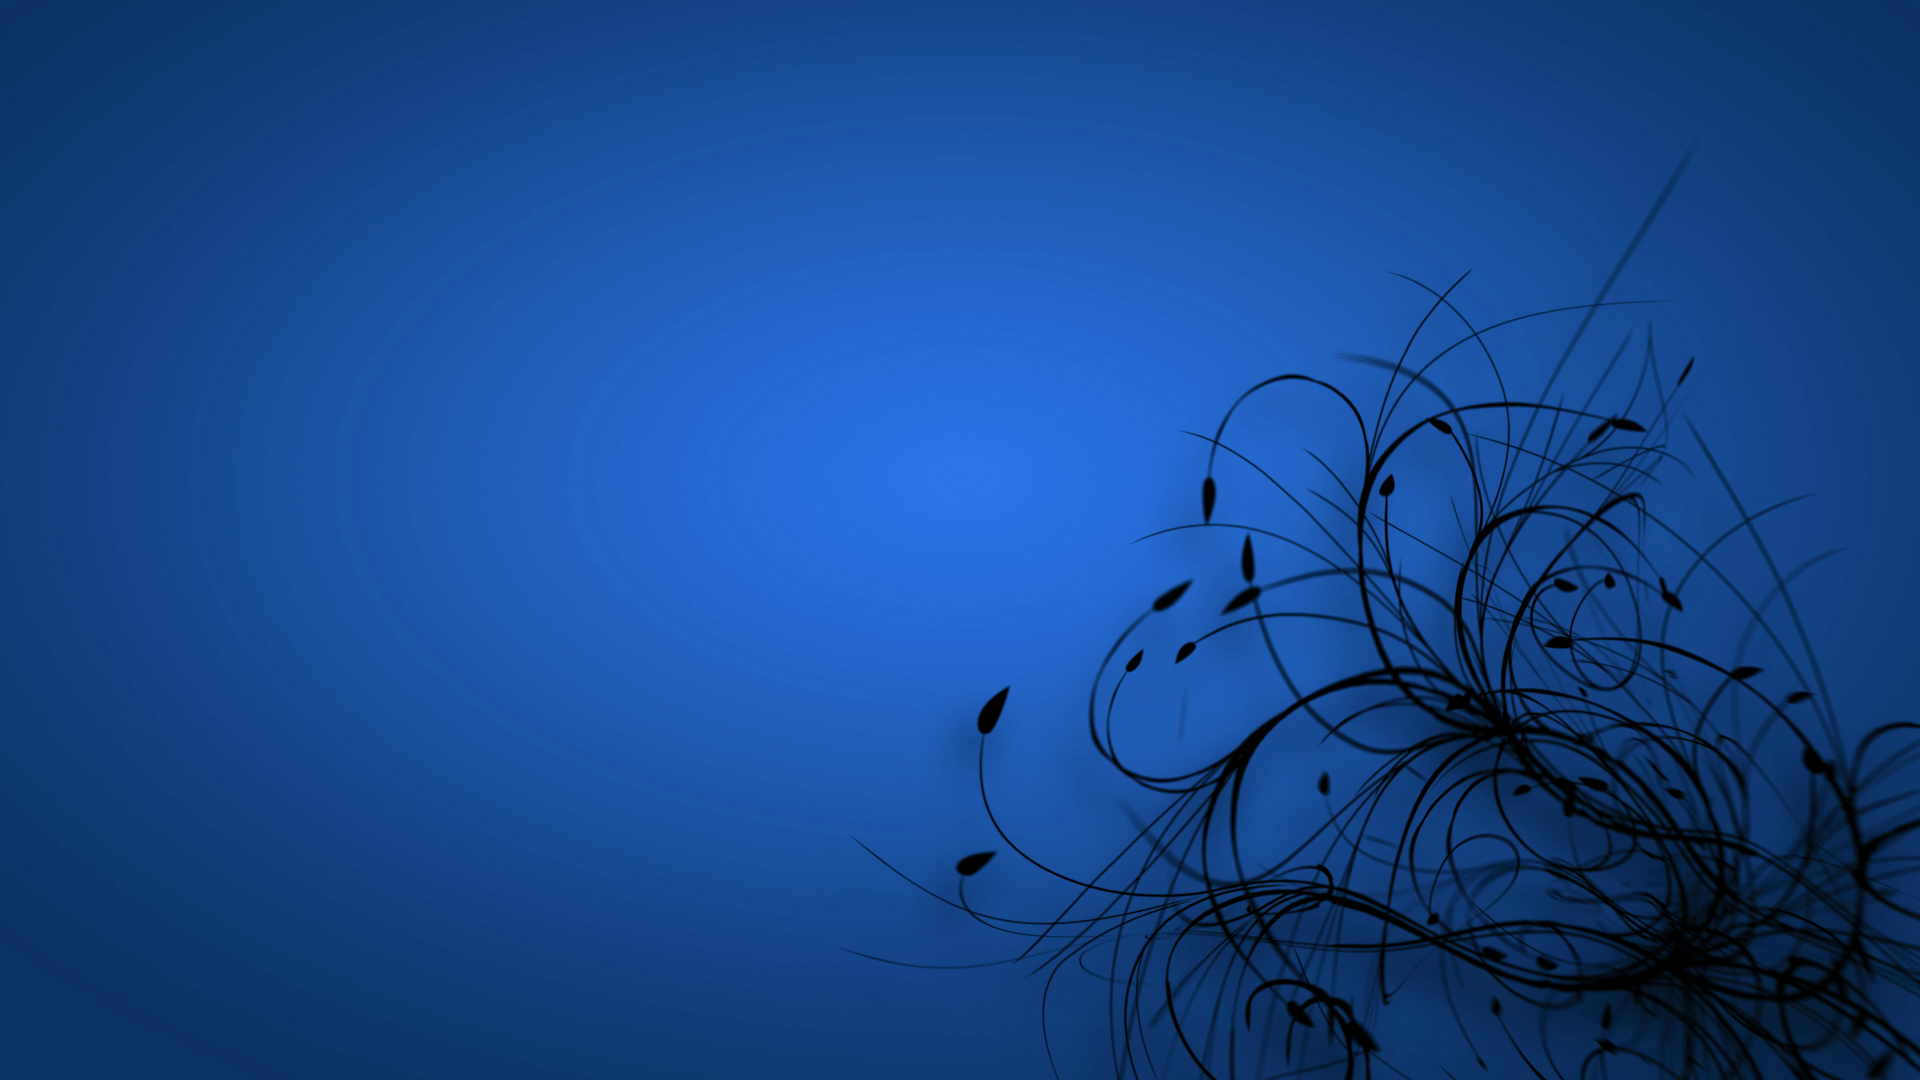 Blue Color Desktop Background